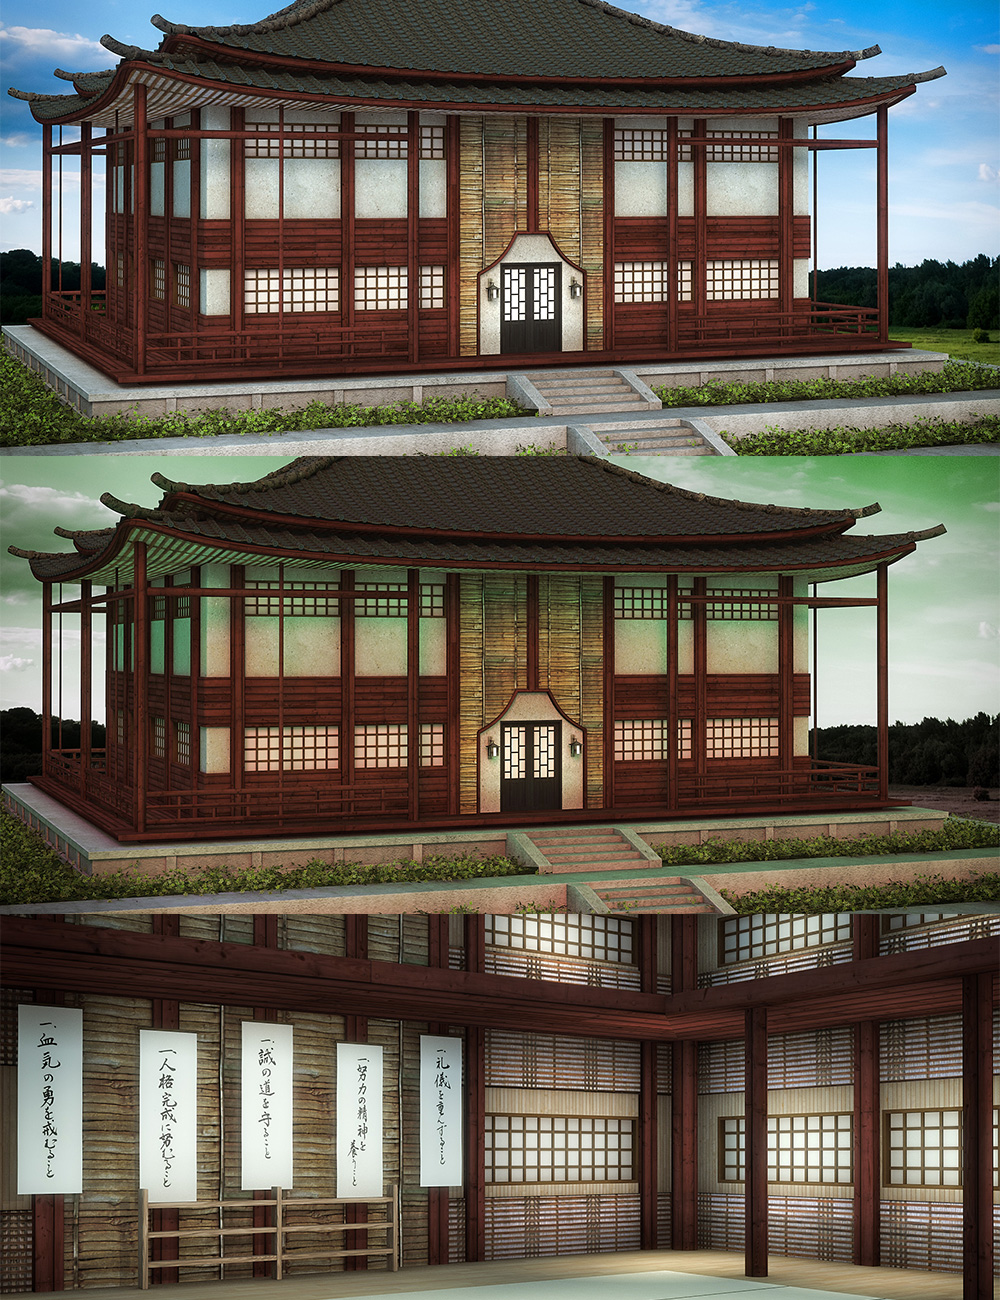 Martial Arts Dojo Lights by: , 3D Models by Daz 3D